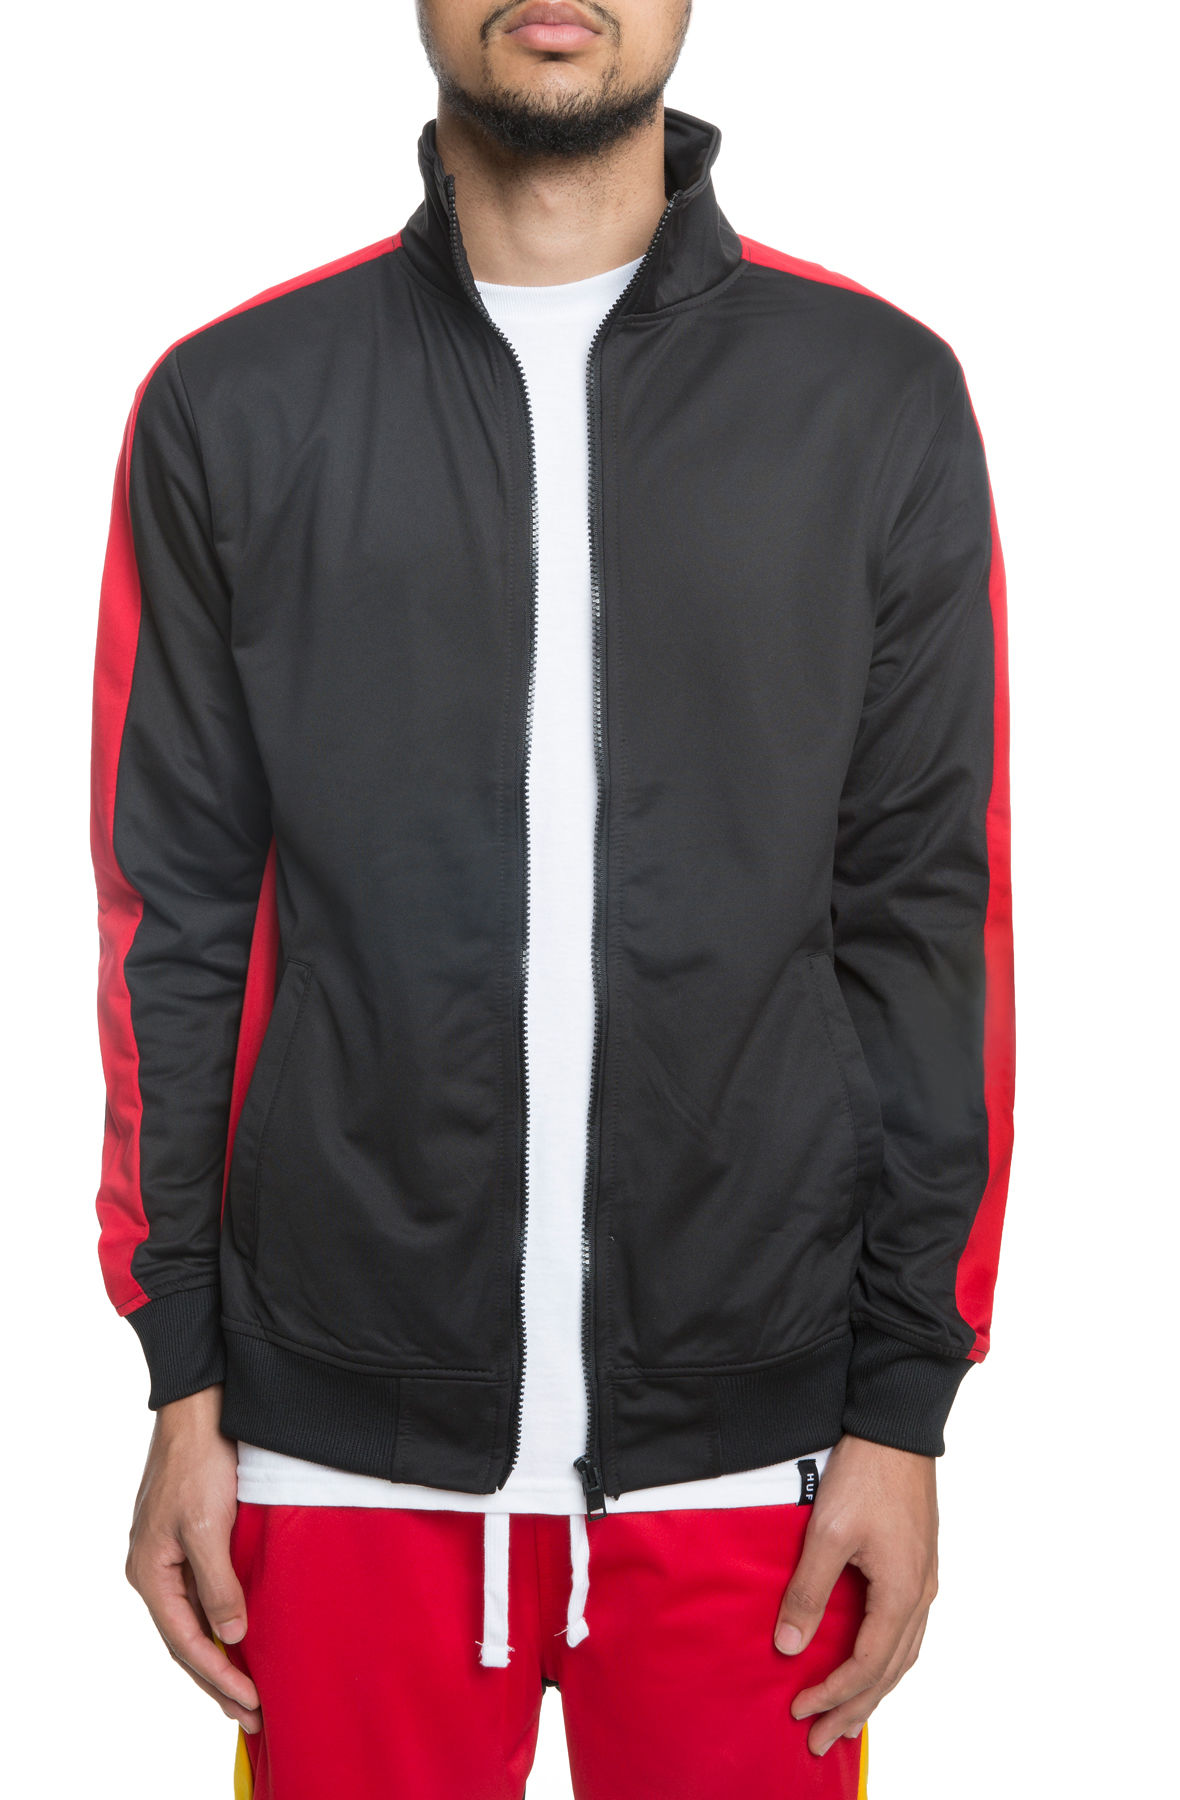 Image of The Guido Track Jacket in Black and Red